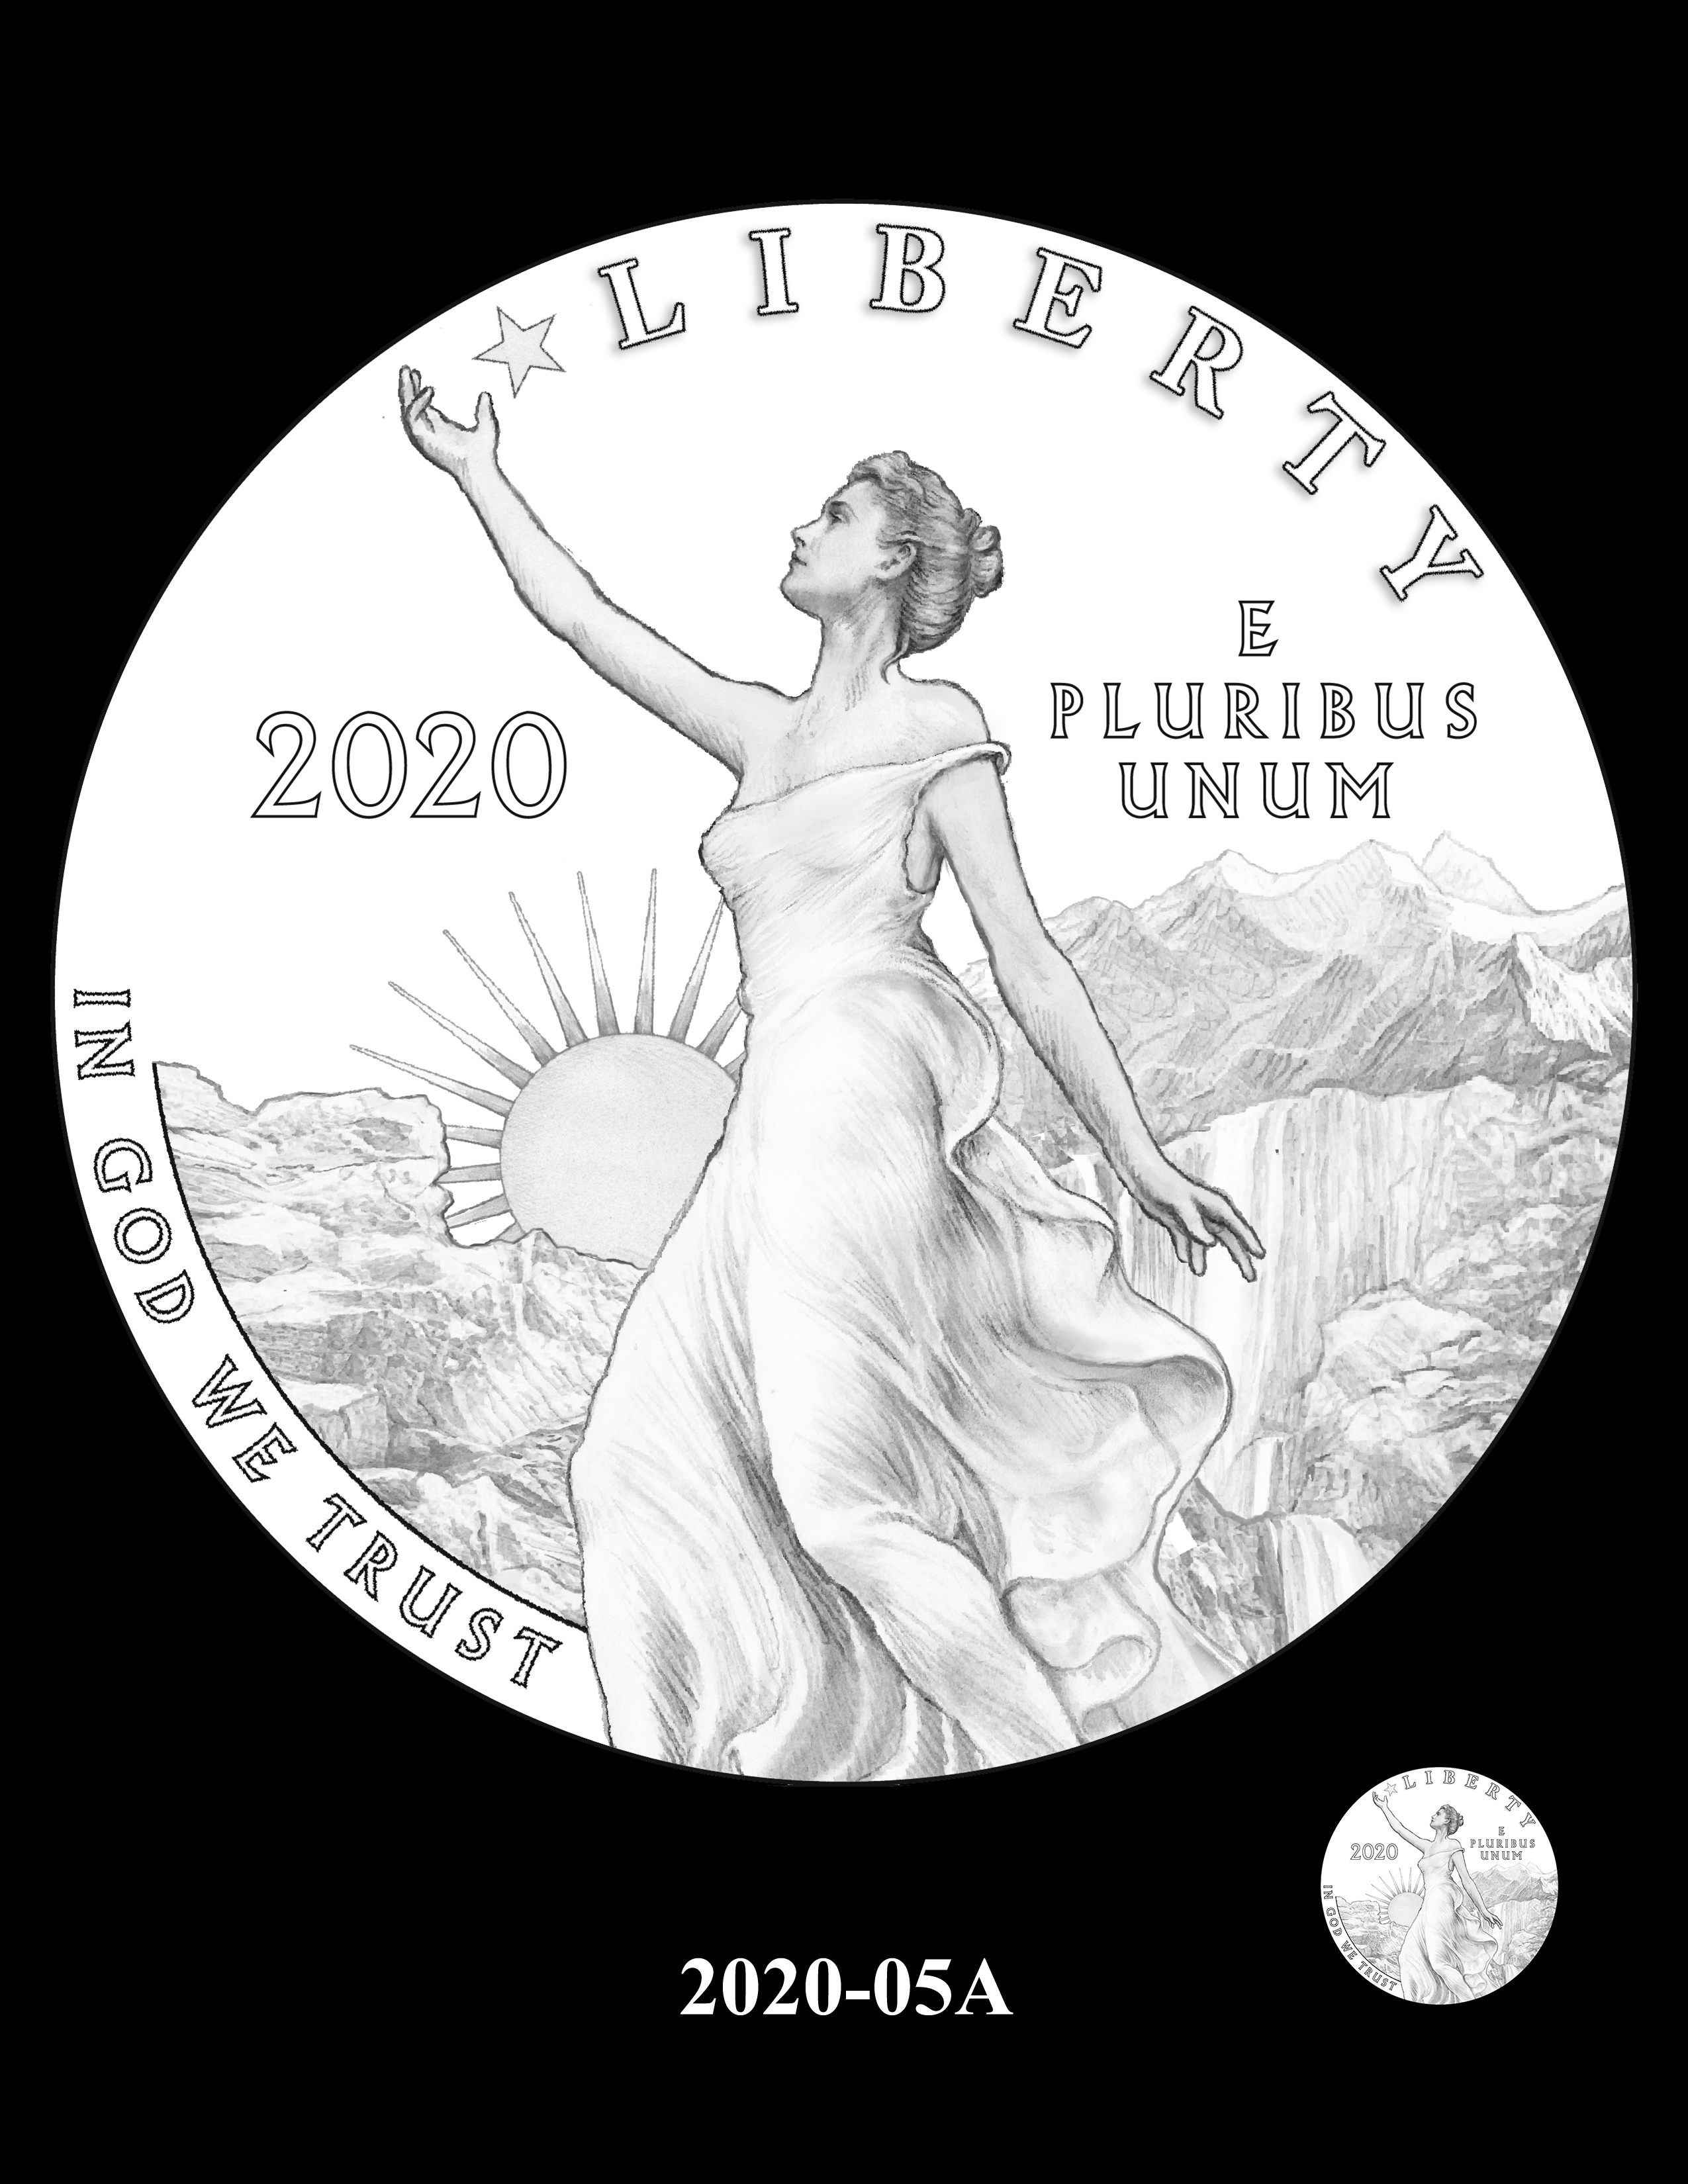 SET06-2020-05A - 2018 2019 and 2020 American Eagle Platinum Proof Program